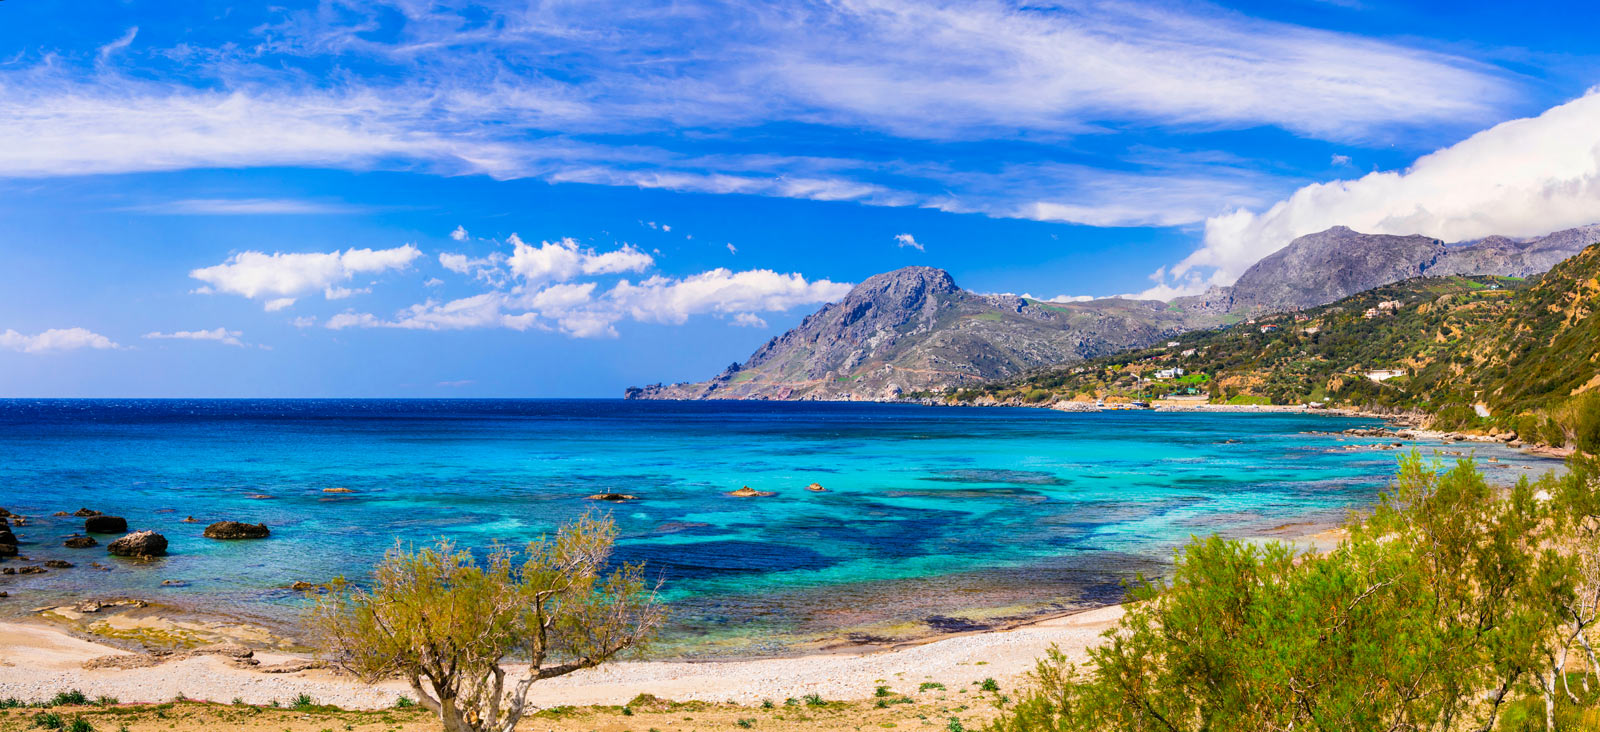 PLAKIAS AND THE SURROUNDING COASTS